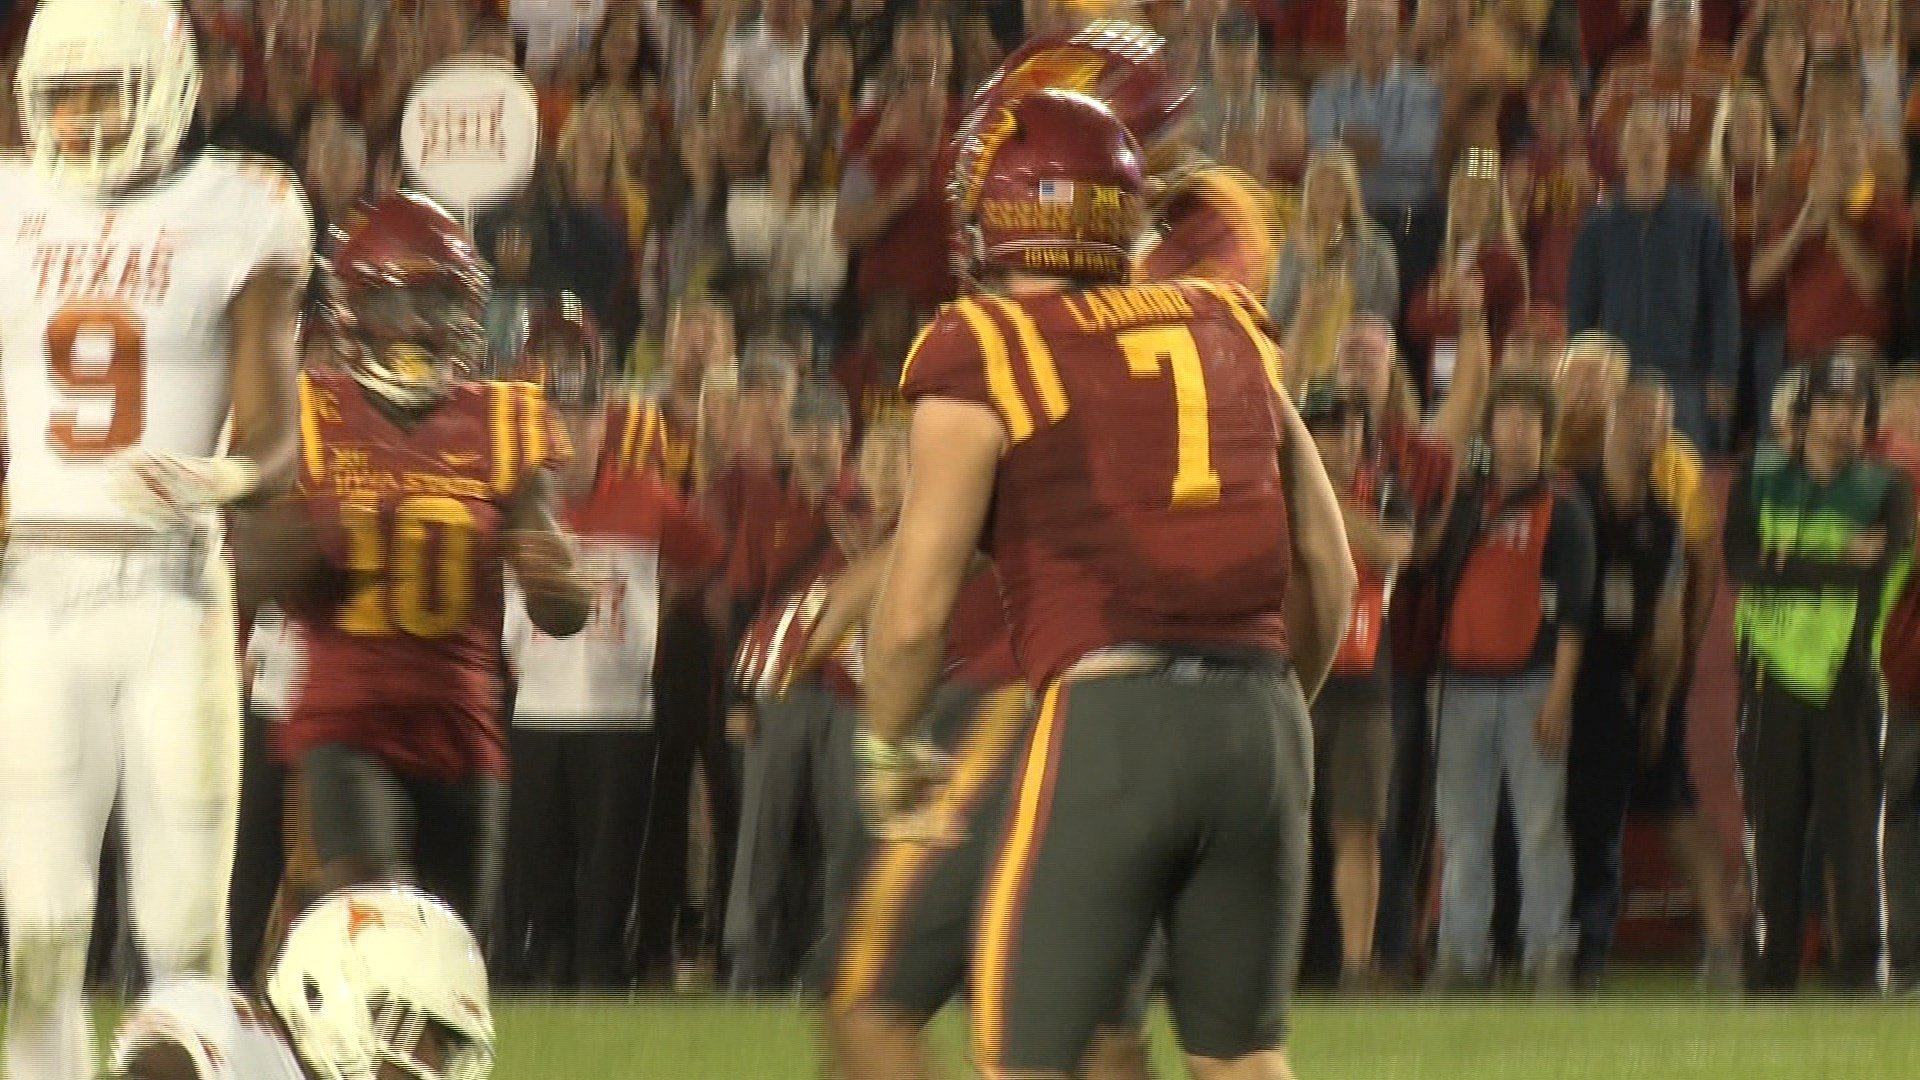 Joel Lanning will play his final game for Iowa State on Saturday.